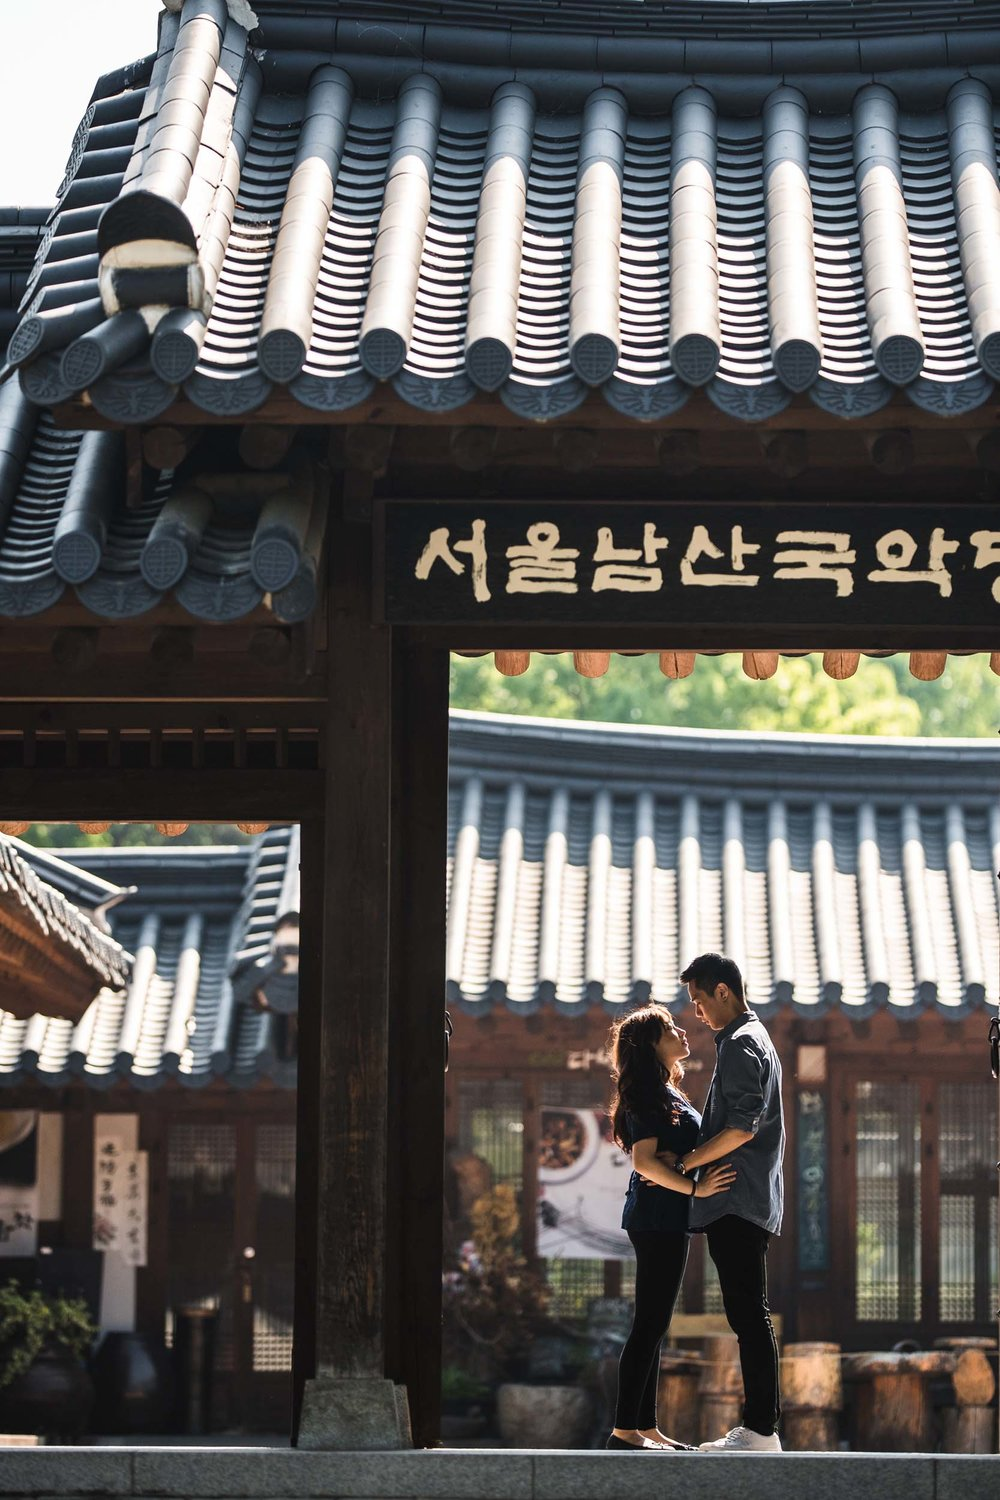 Check out these amazing photos of Seoul to inspire your next vacation on the Flytographer blog! | Travel + Vacation Photographer | Family Vacations | Engagement Proposals | Honeymoons | Anniversary Gifts | Bachelorette Ideas | Solo Traveller Tips |  Flytographer captures your travel memories - everything from surprise proposals, honeymoons, family vacations, and more. So often you are missing out of your own photos! Flytographer solves that problem for you. Our photographers also act as informal tour guides and provide fun local tips to our customers, showing them an area of a city they may not have explored without Flytographer. Book your photographer at 1.888.211.7178 or visit our website at www.flytographer.com/book